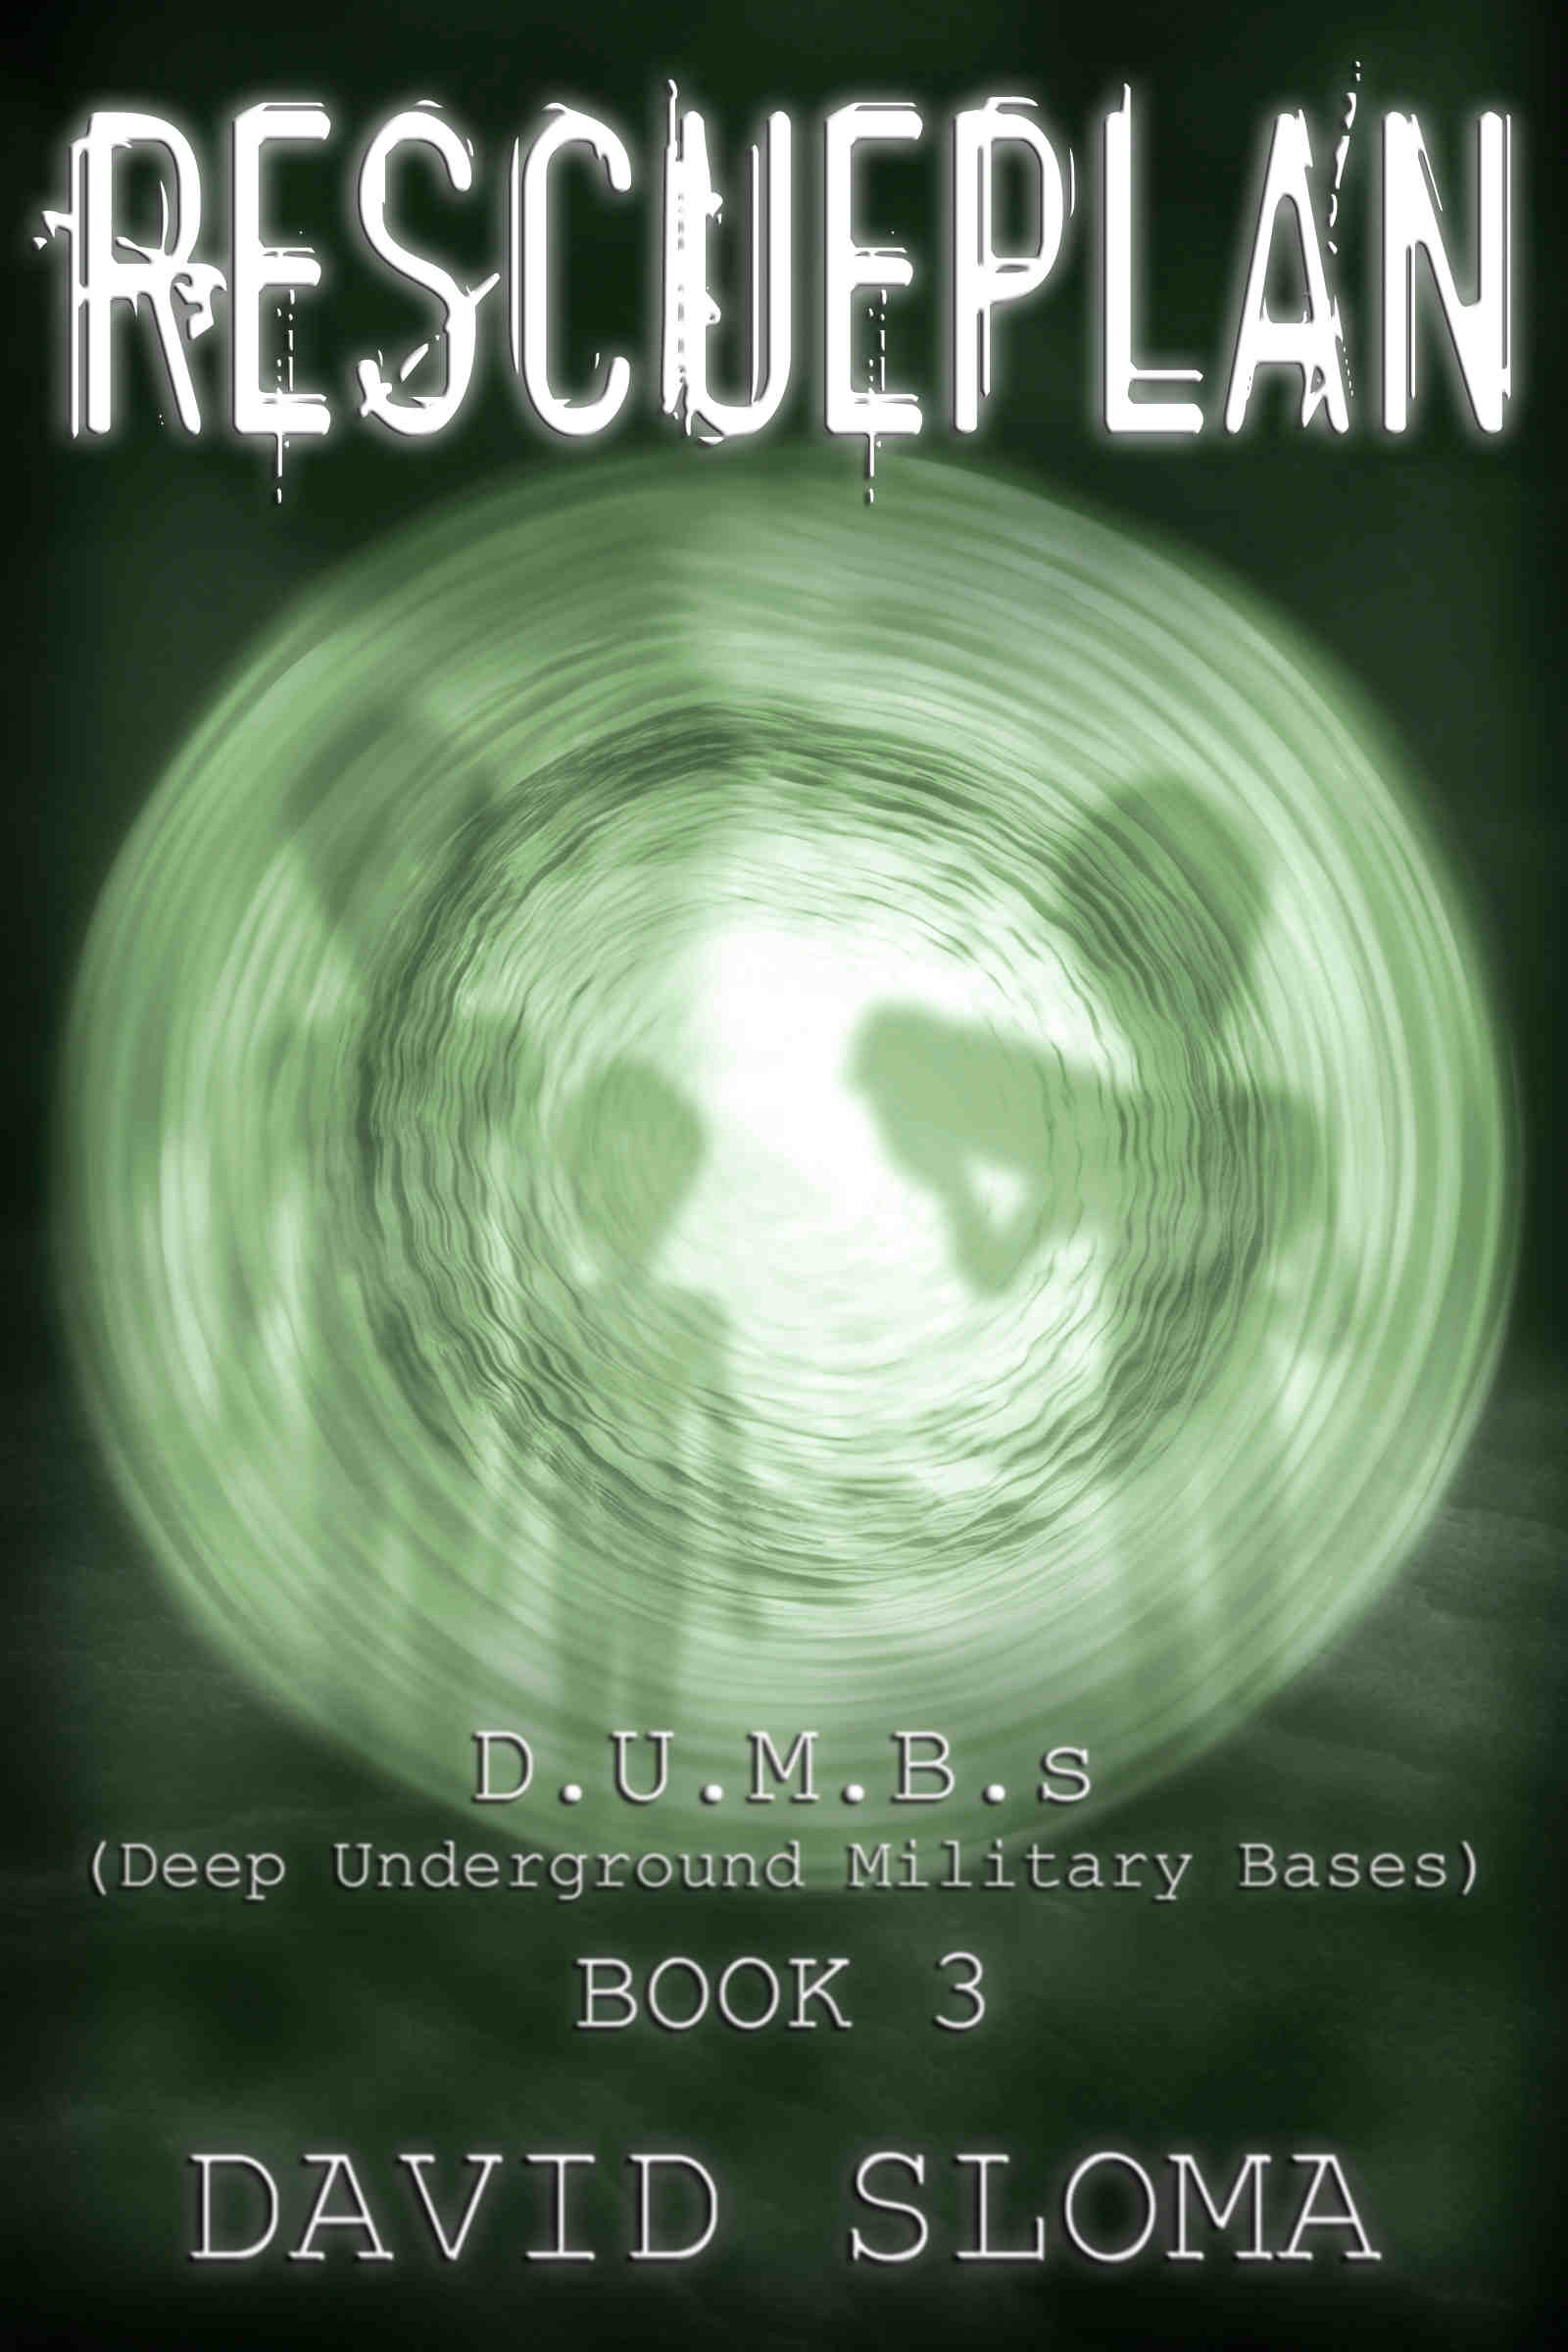 New D.U.M.B.s book coming soon!